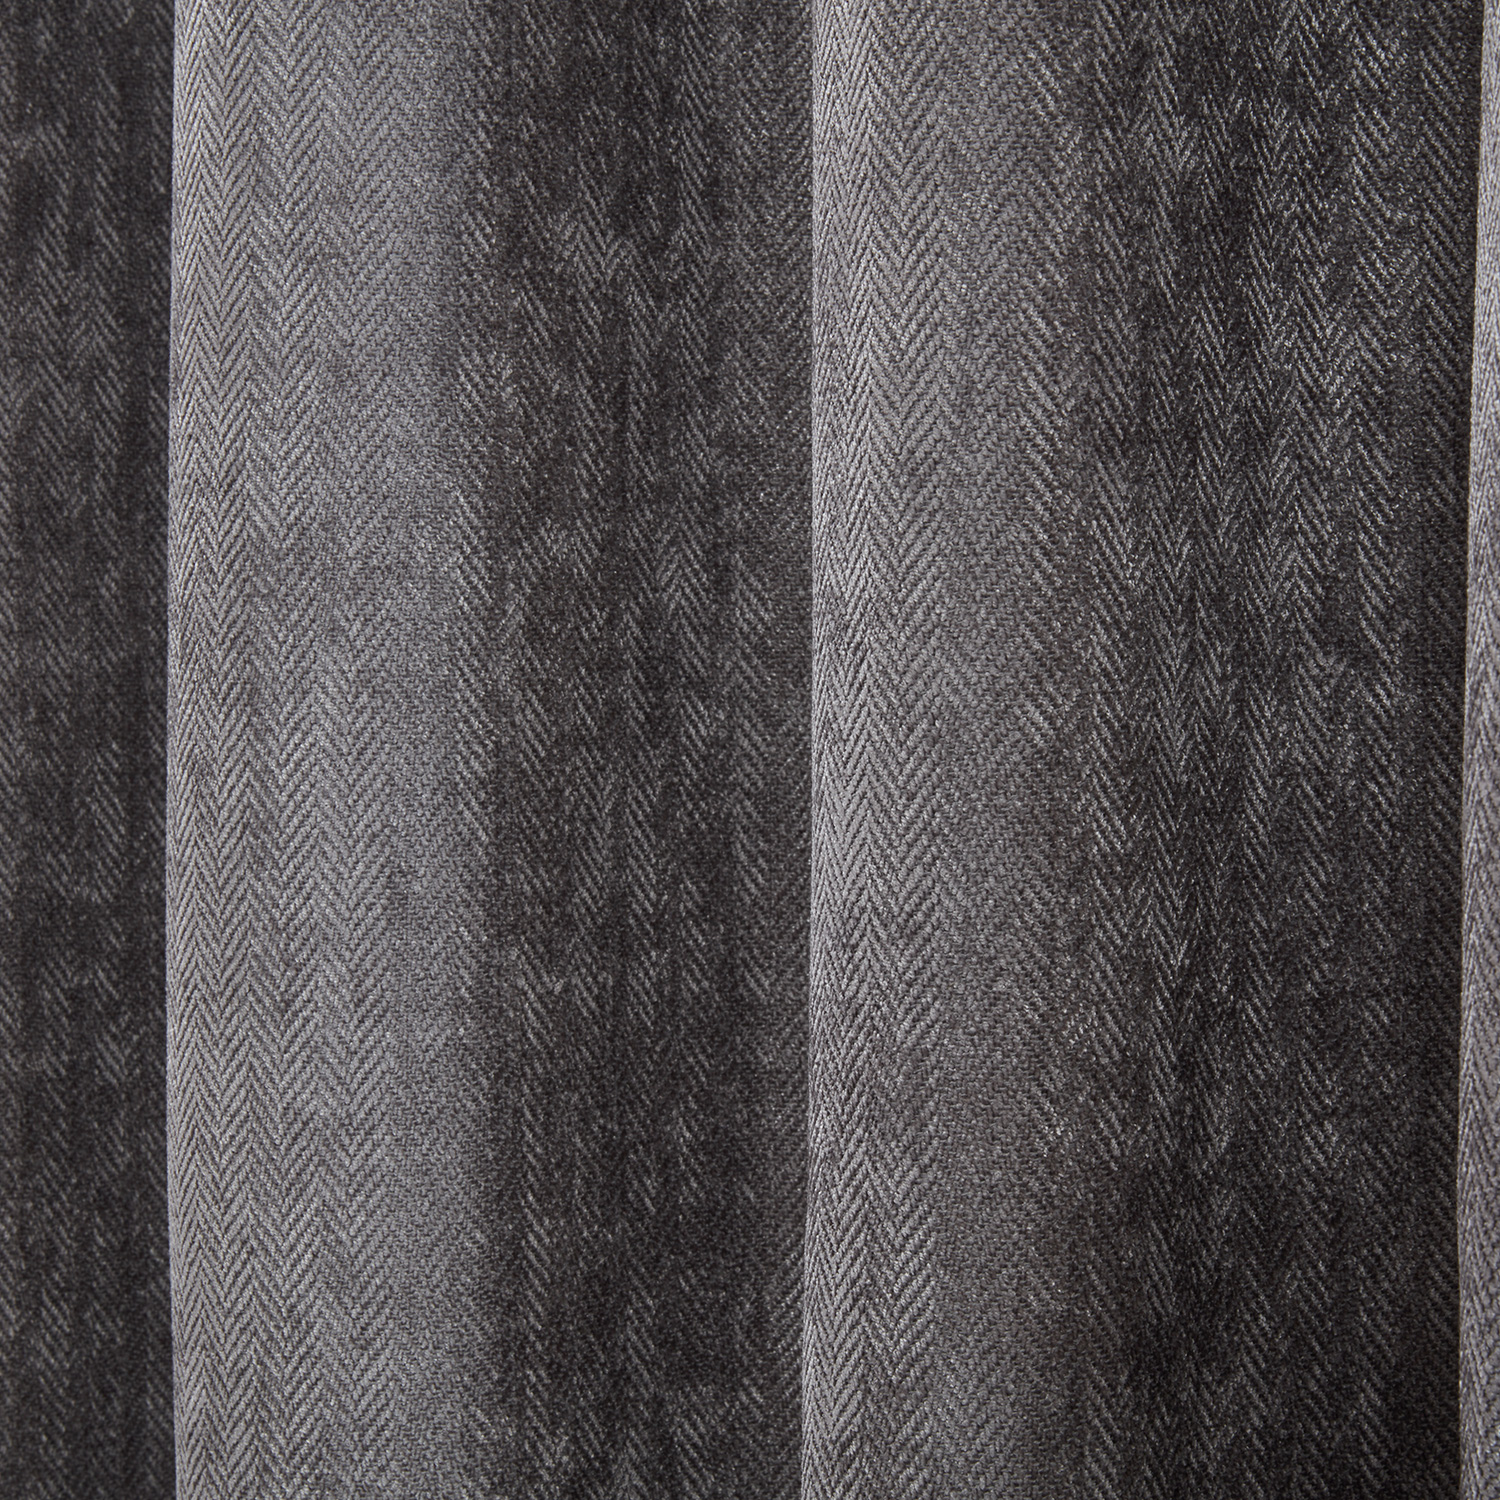 B/OUT & THERMAL H/BONE Deep Charcoal 66x54 Curtain